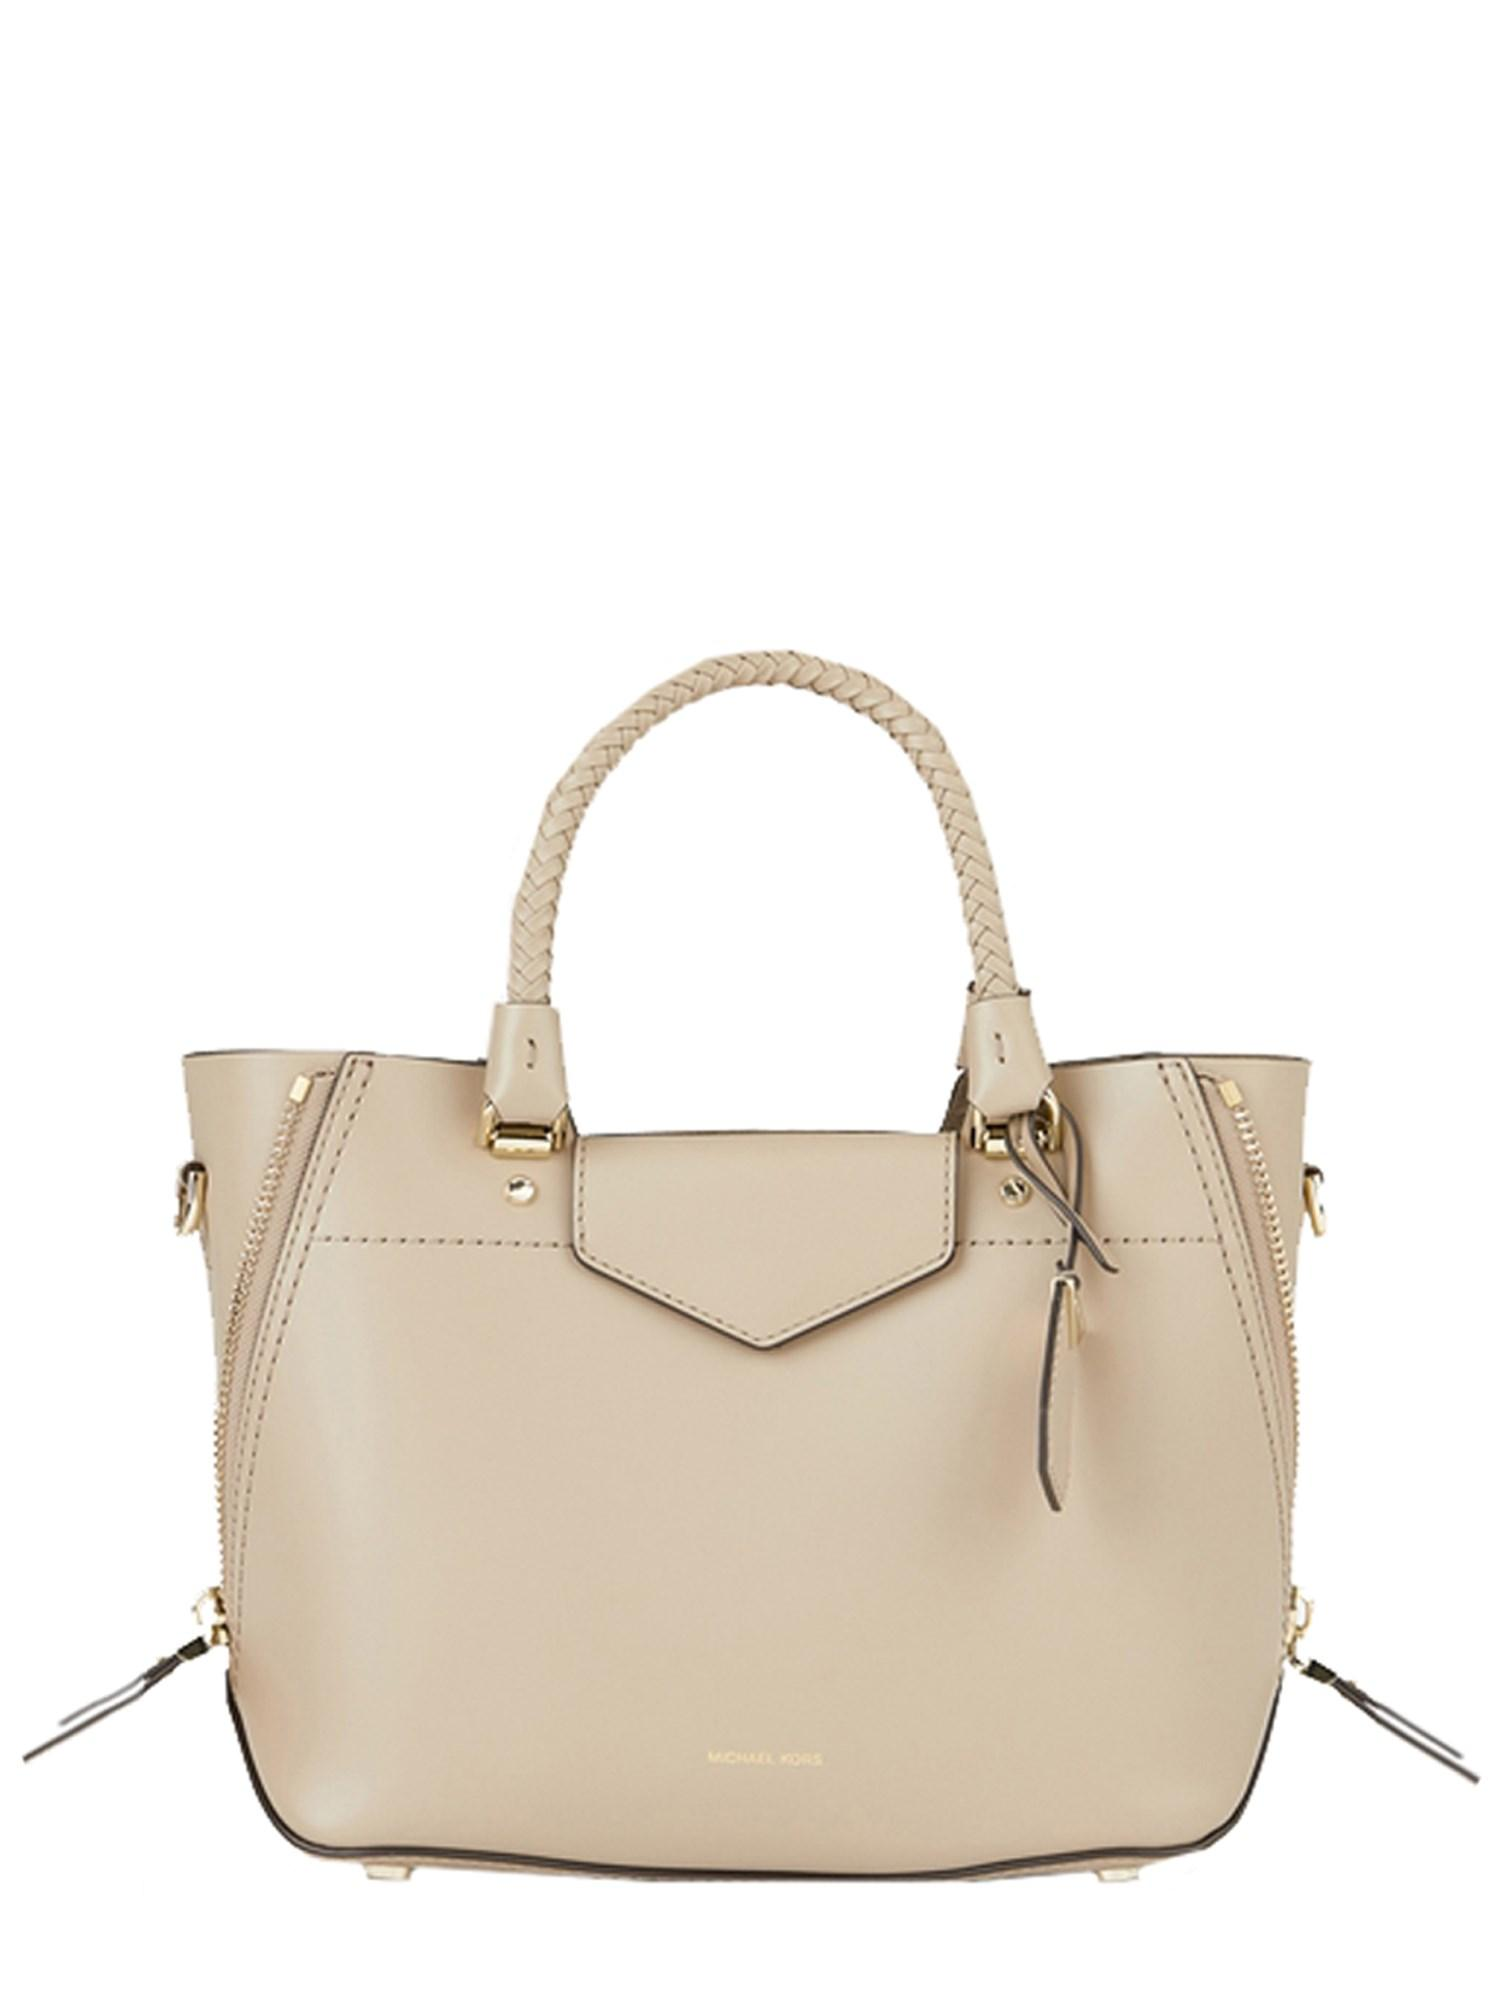 451a118f52 Lyst - MICHAEL Michael Kors Borsa A Mano Blakely In Pelle in Natural